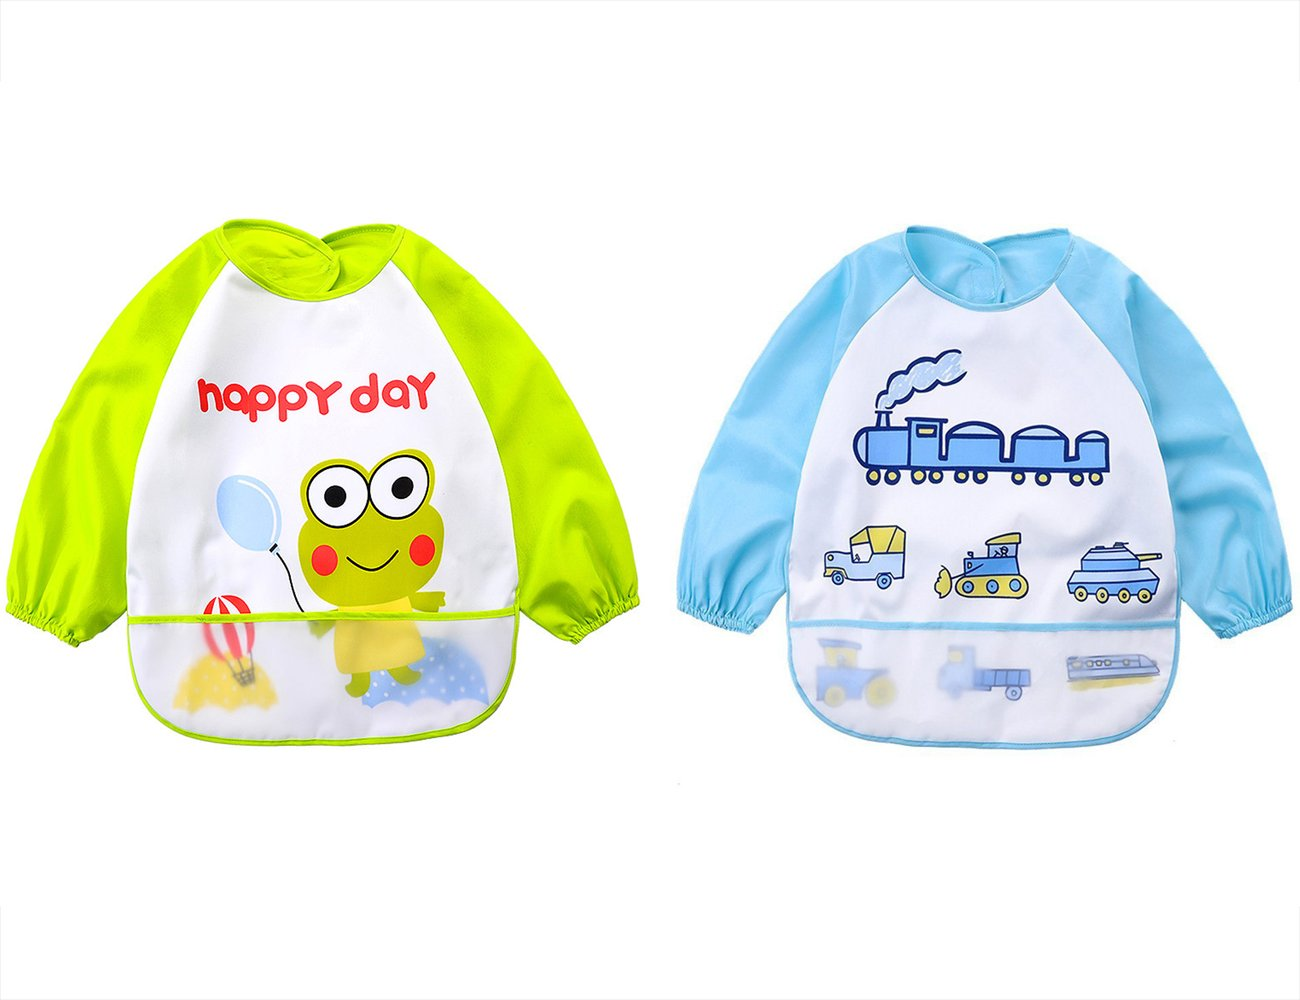 Baby bibs 2 Pack-Unisex Baby Sleeved Bibs Cartoon Waterproof Smock for 6 Months-3 Years Infant Toddler (Boy2) TRUEDAYS